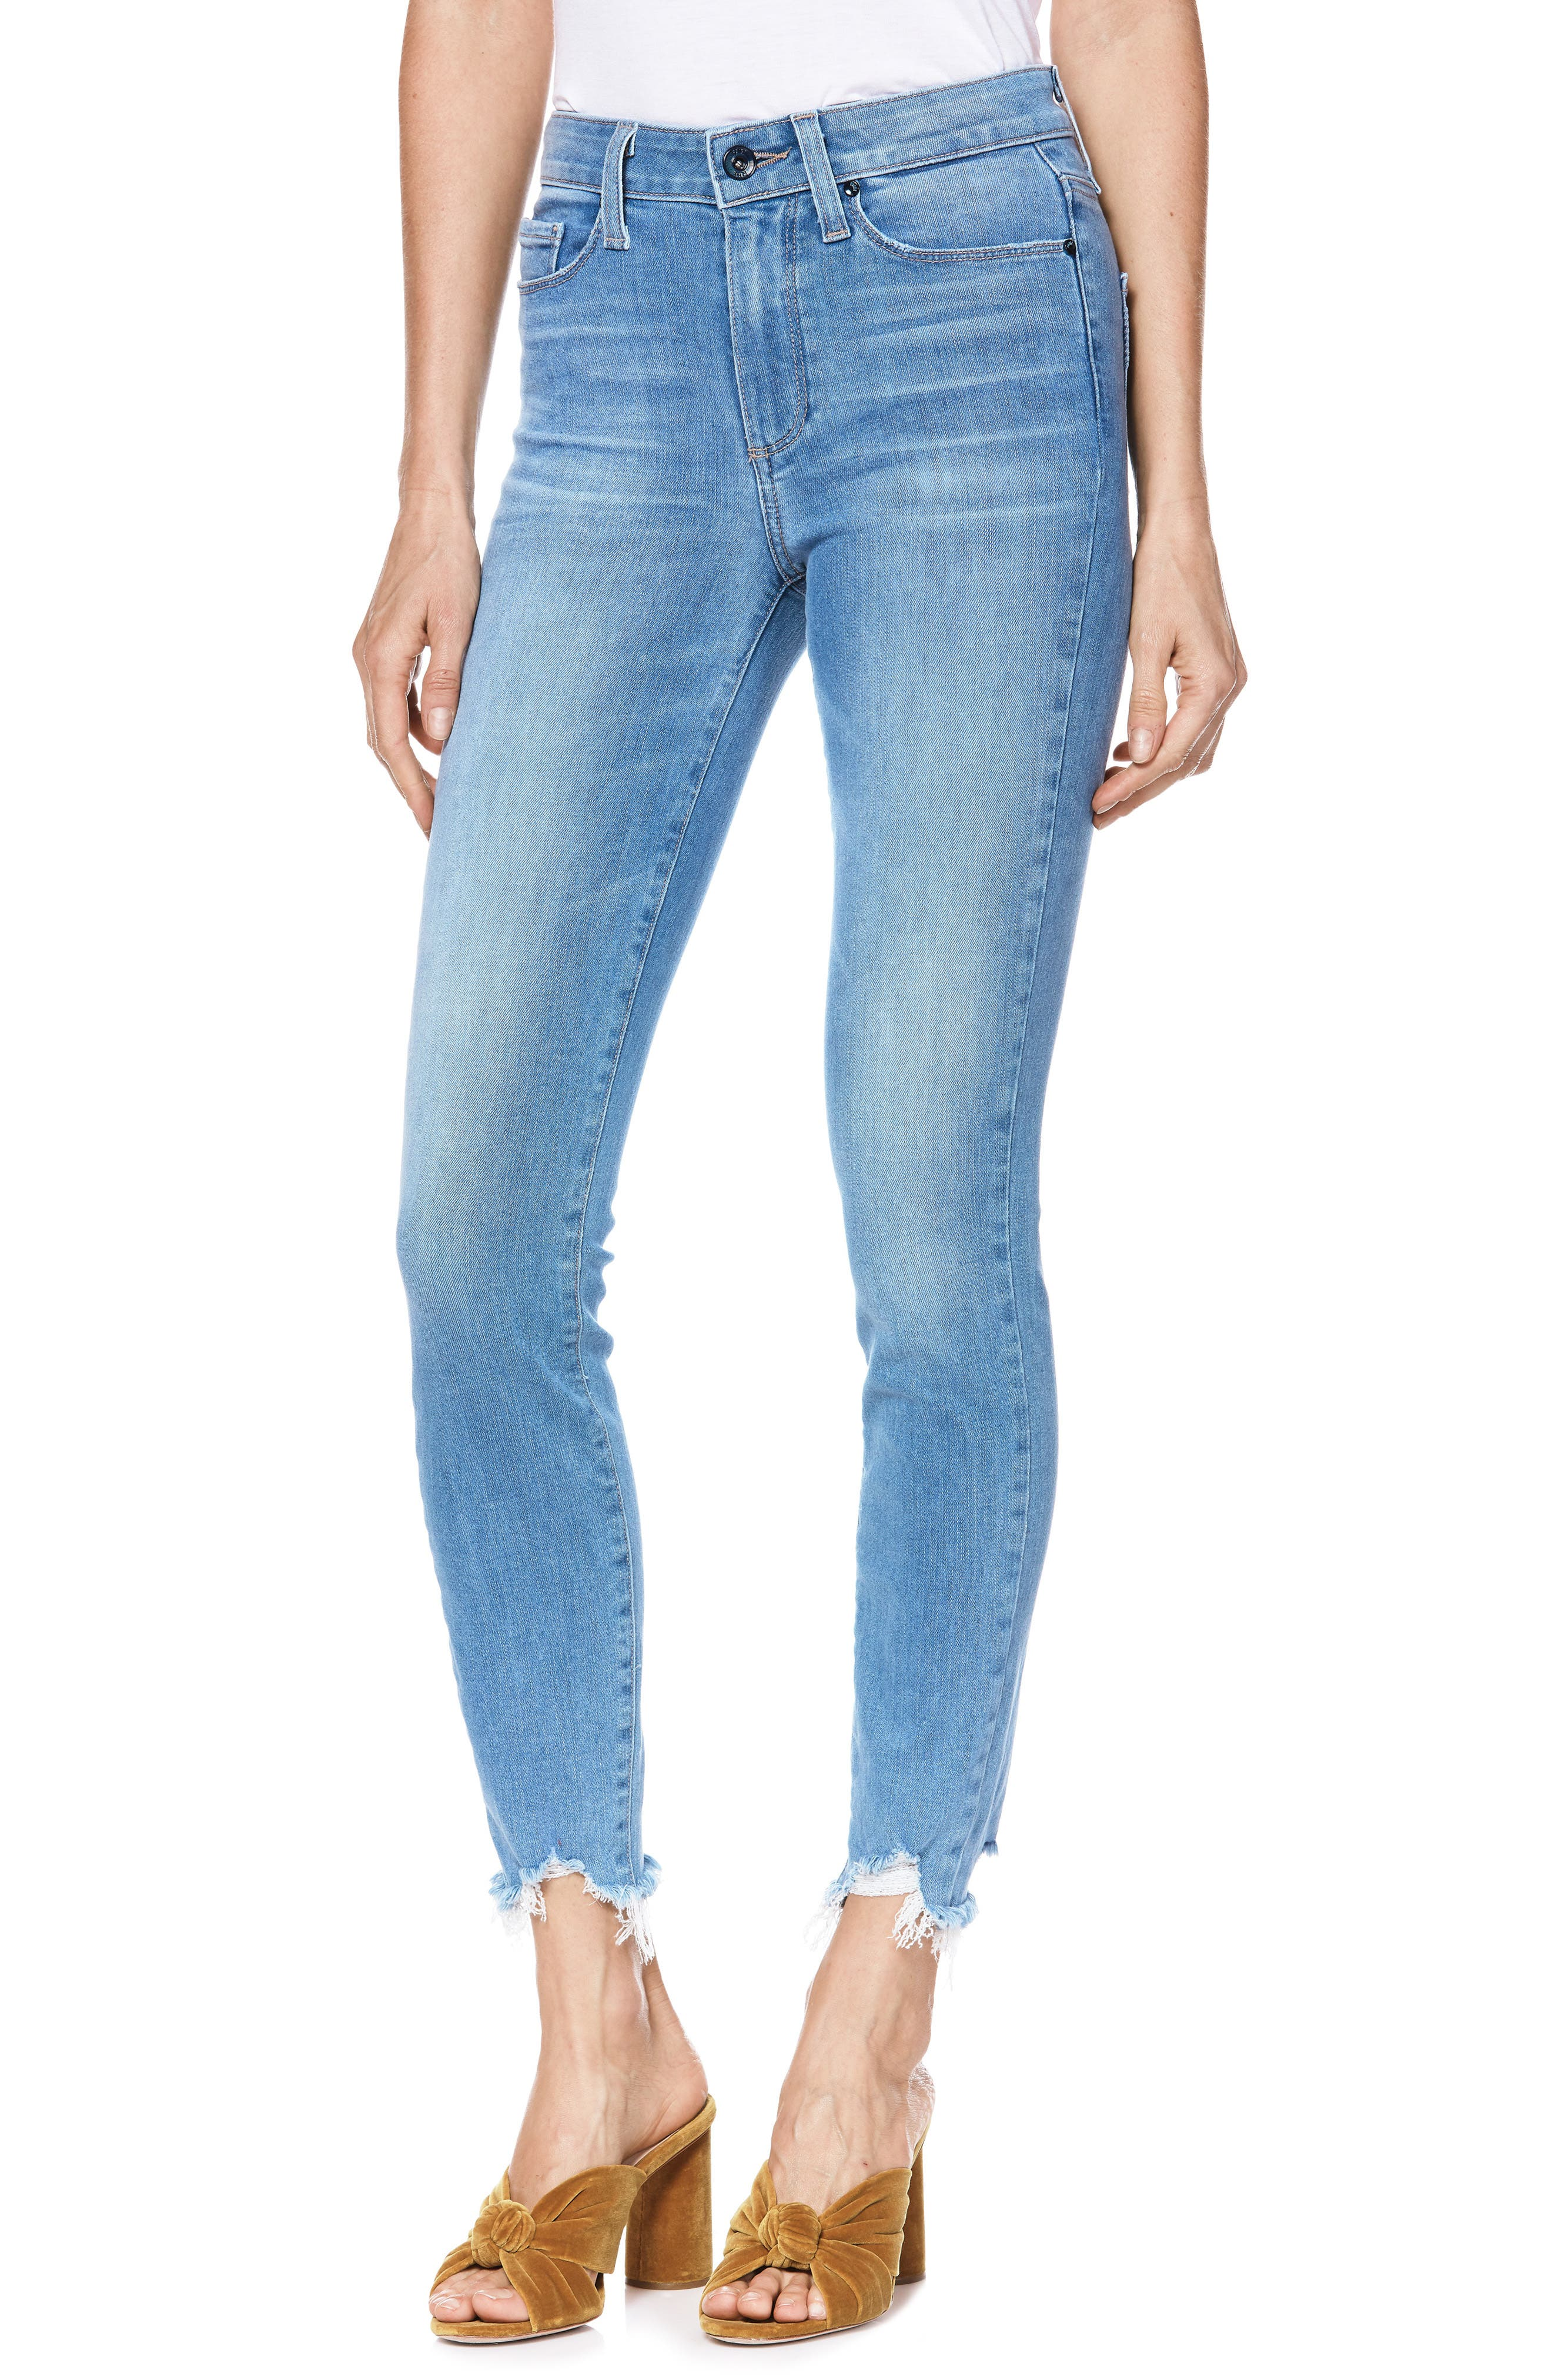 Transcend Vintage - Hoxton High Waist Ripped Crop Skinny Jeans,                             Main thumbnail 1, color,                             ALAMEDA